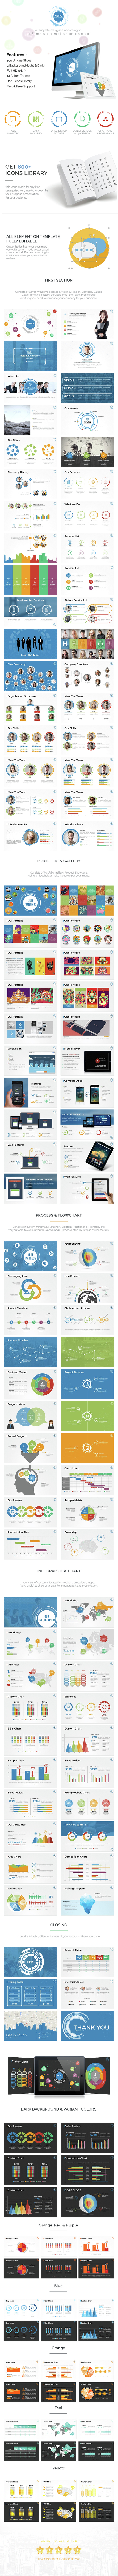 Nero Keynote - Network and Business Presentation - Business Keynote Templates